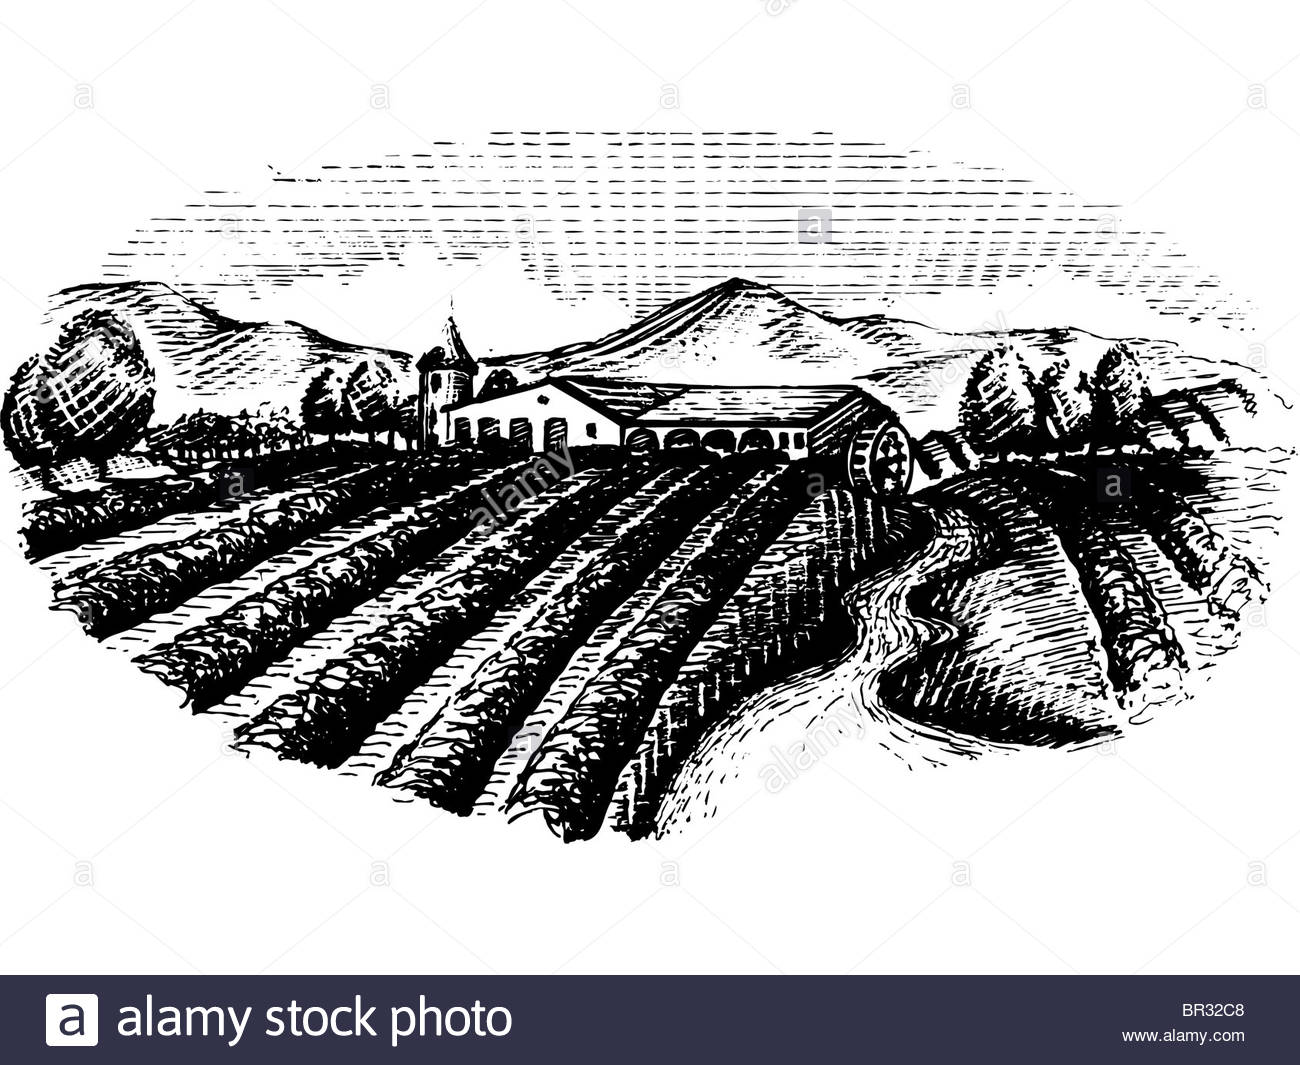 1300x1065 A Black And White Drawing Of A Farmland Ready For Harvest Stock